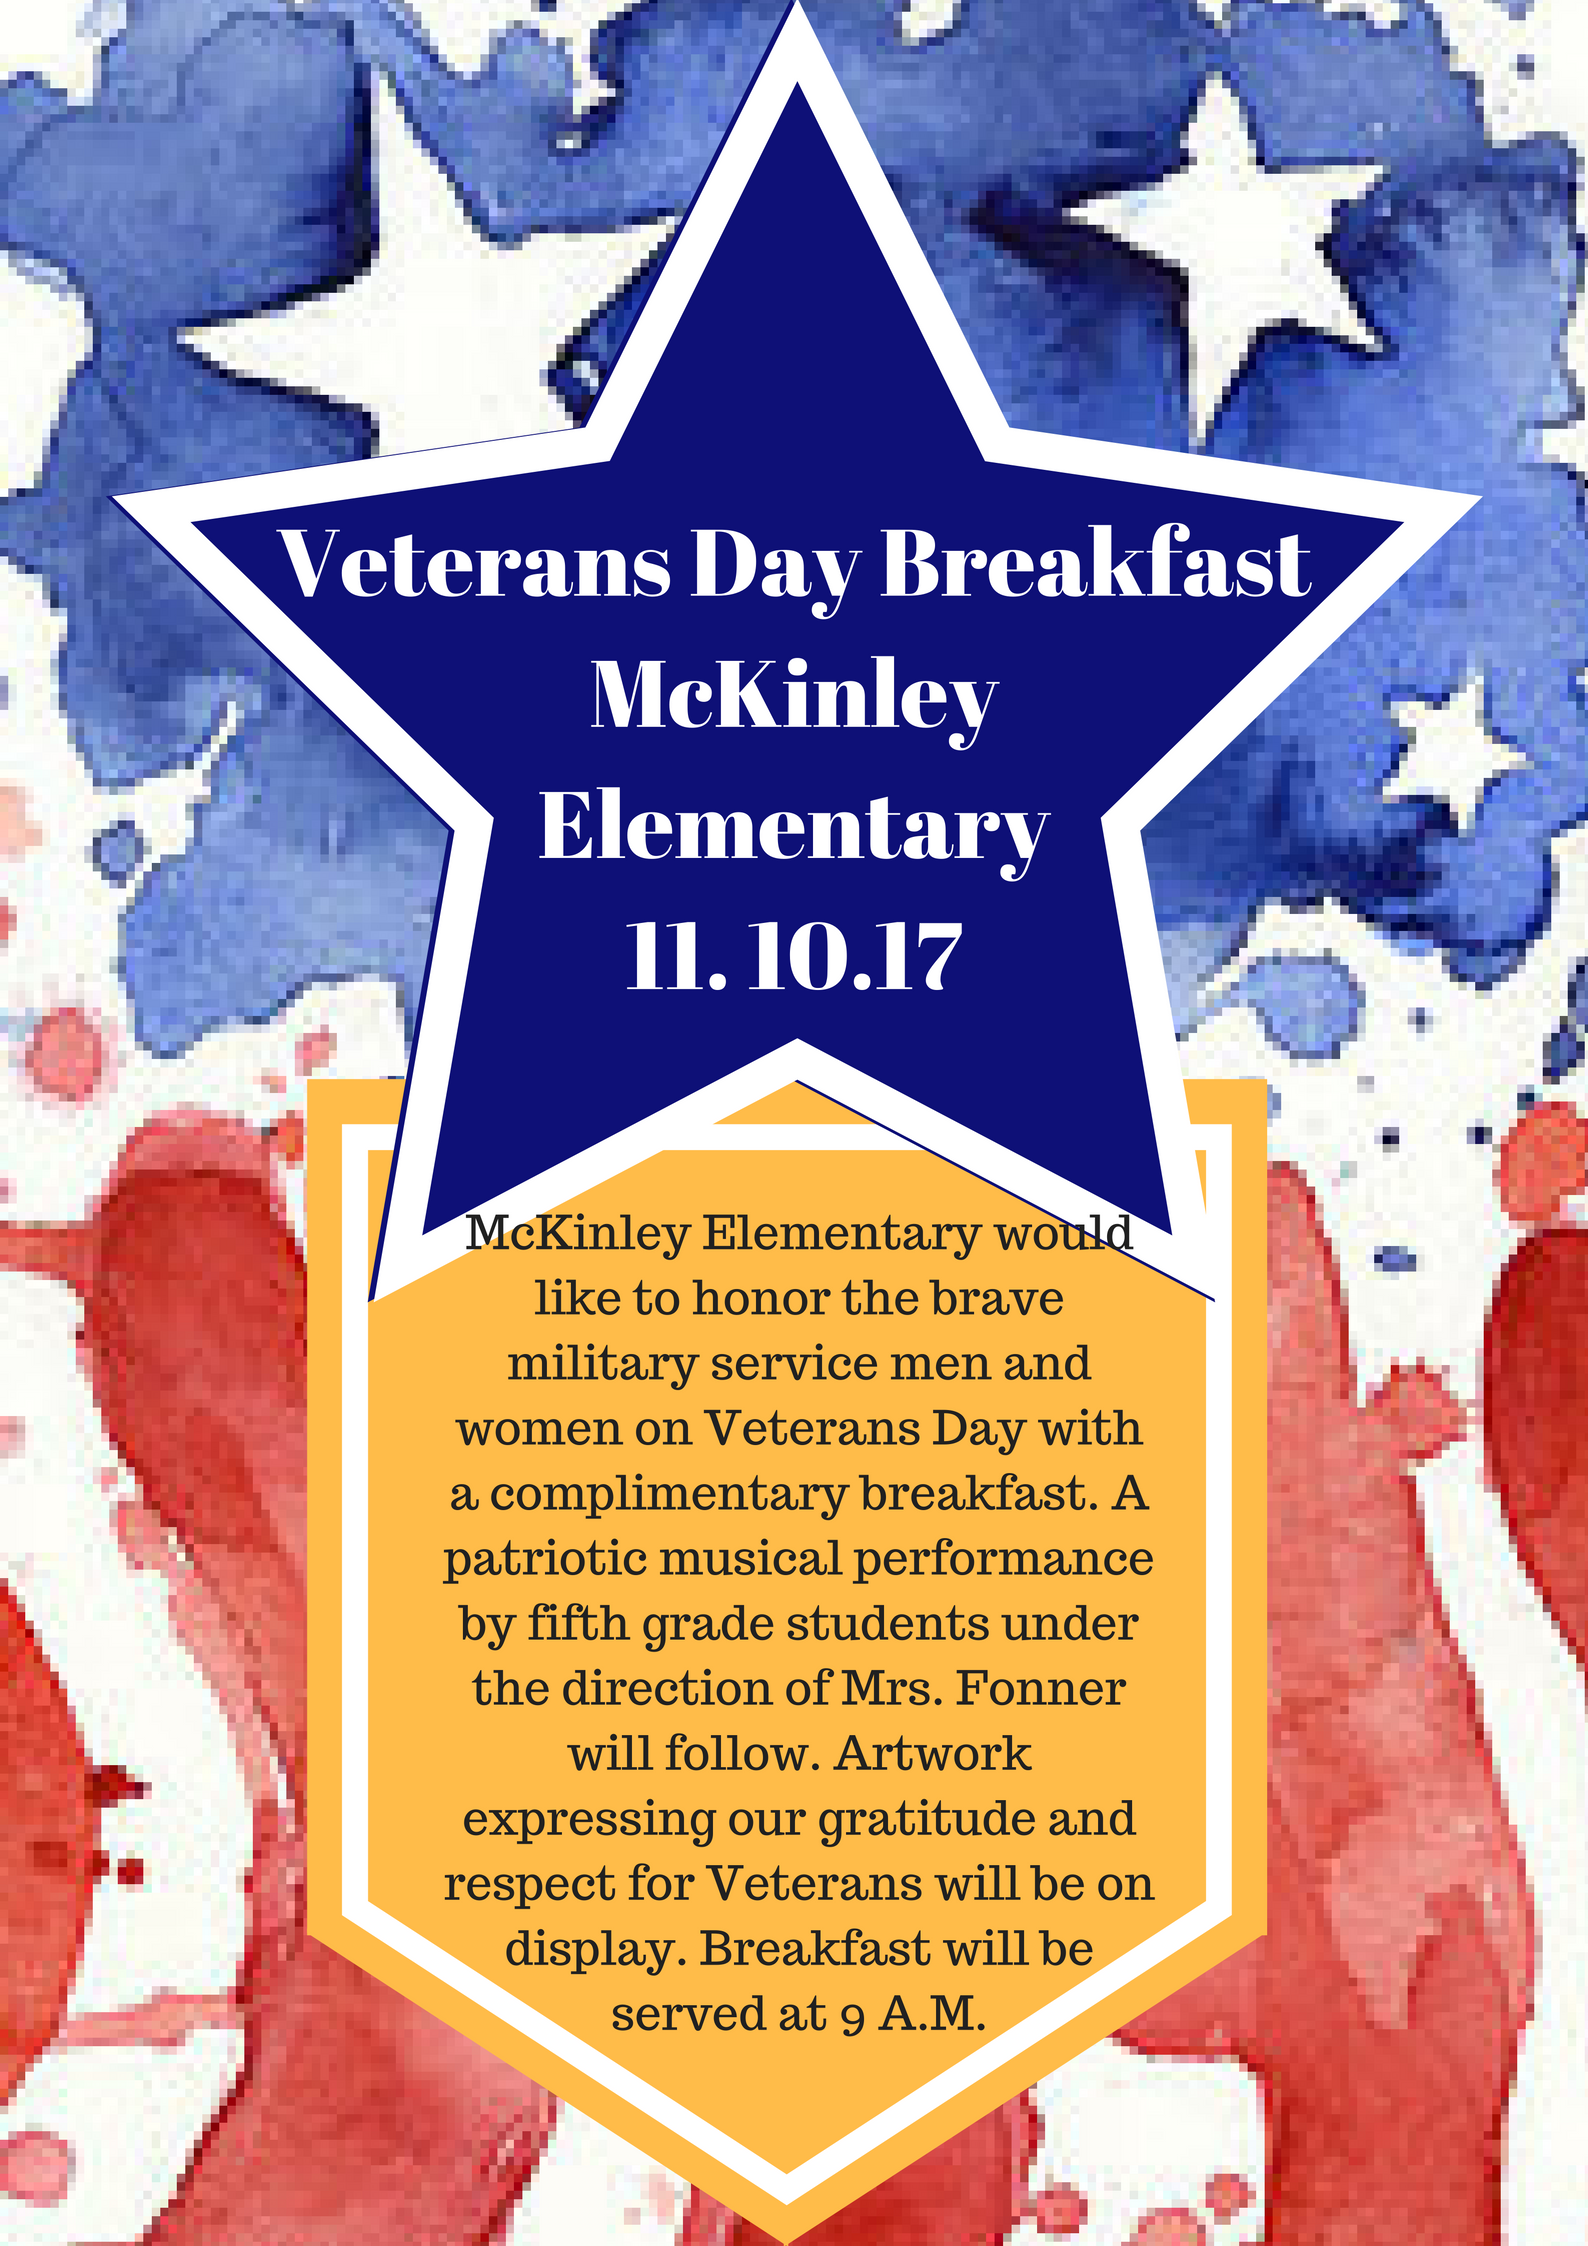 veteransbreakfast